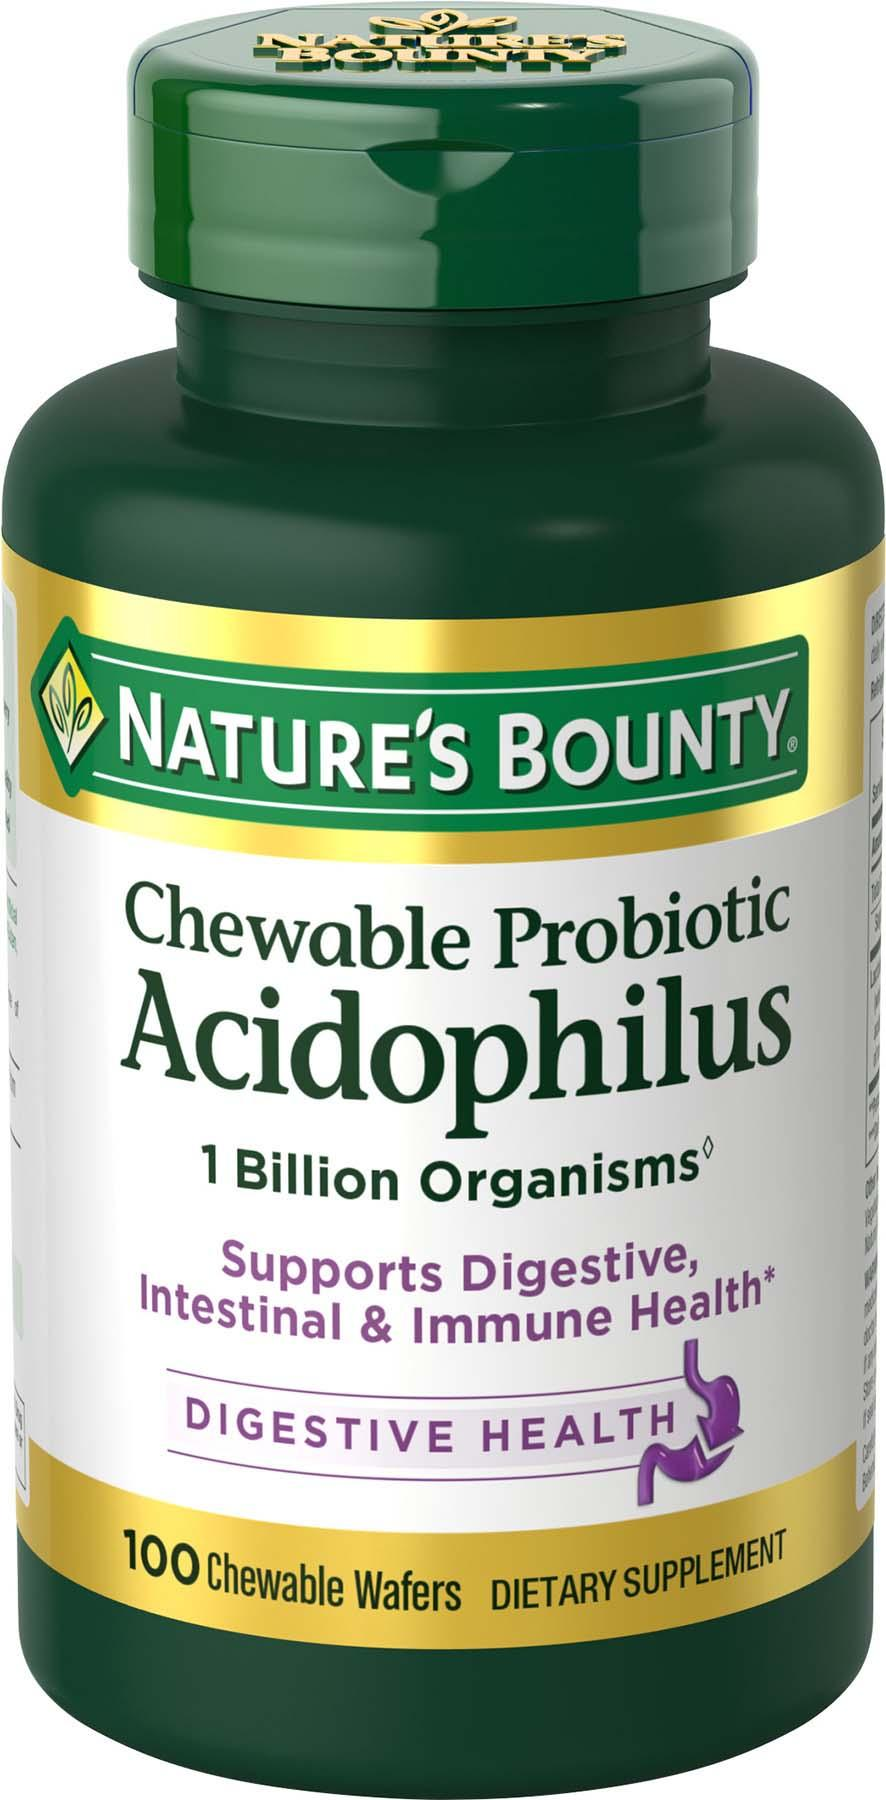 Nature S Bounty Chewable Probiotic Acidophilus Reviews